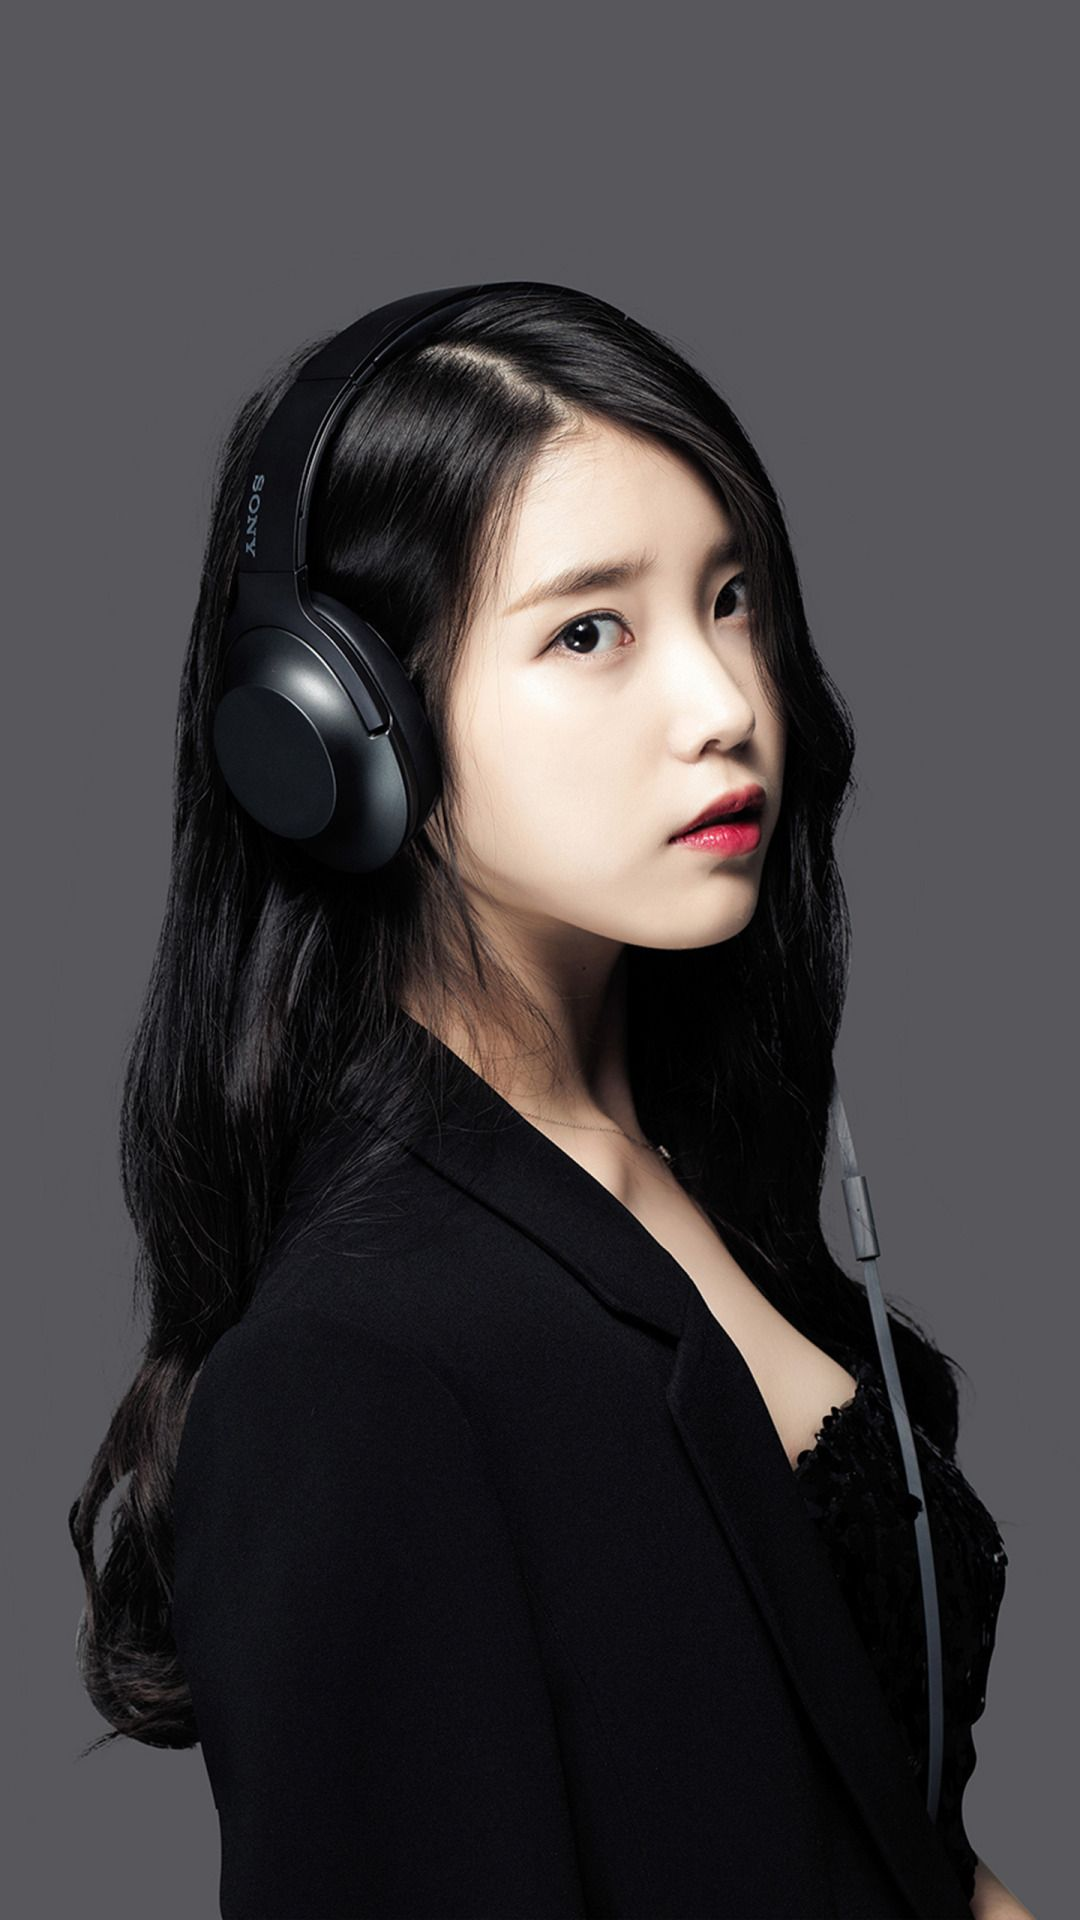 Iumushimushi Iu Sony Wallpapers Cropped For Mobile By